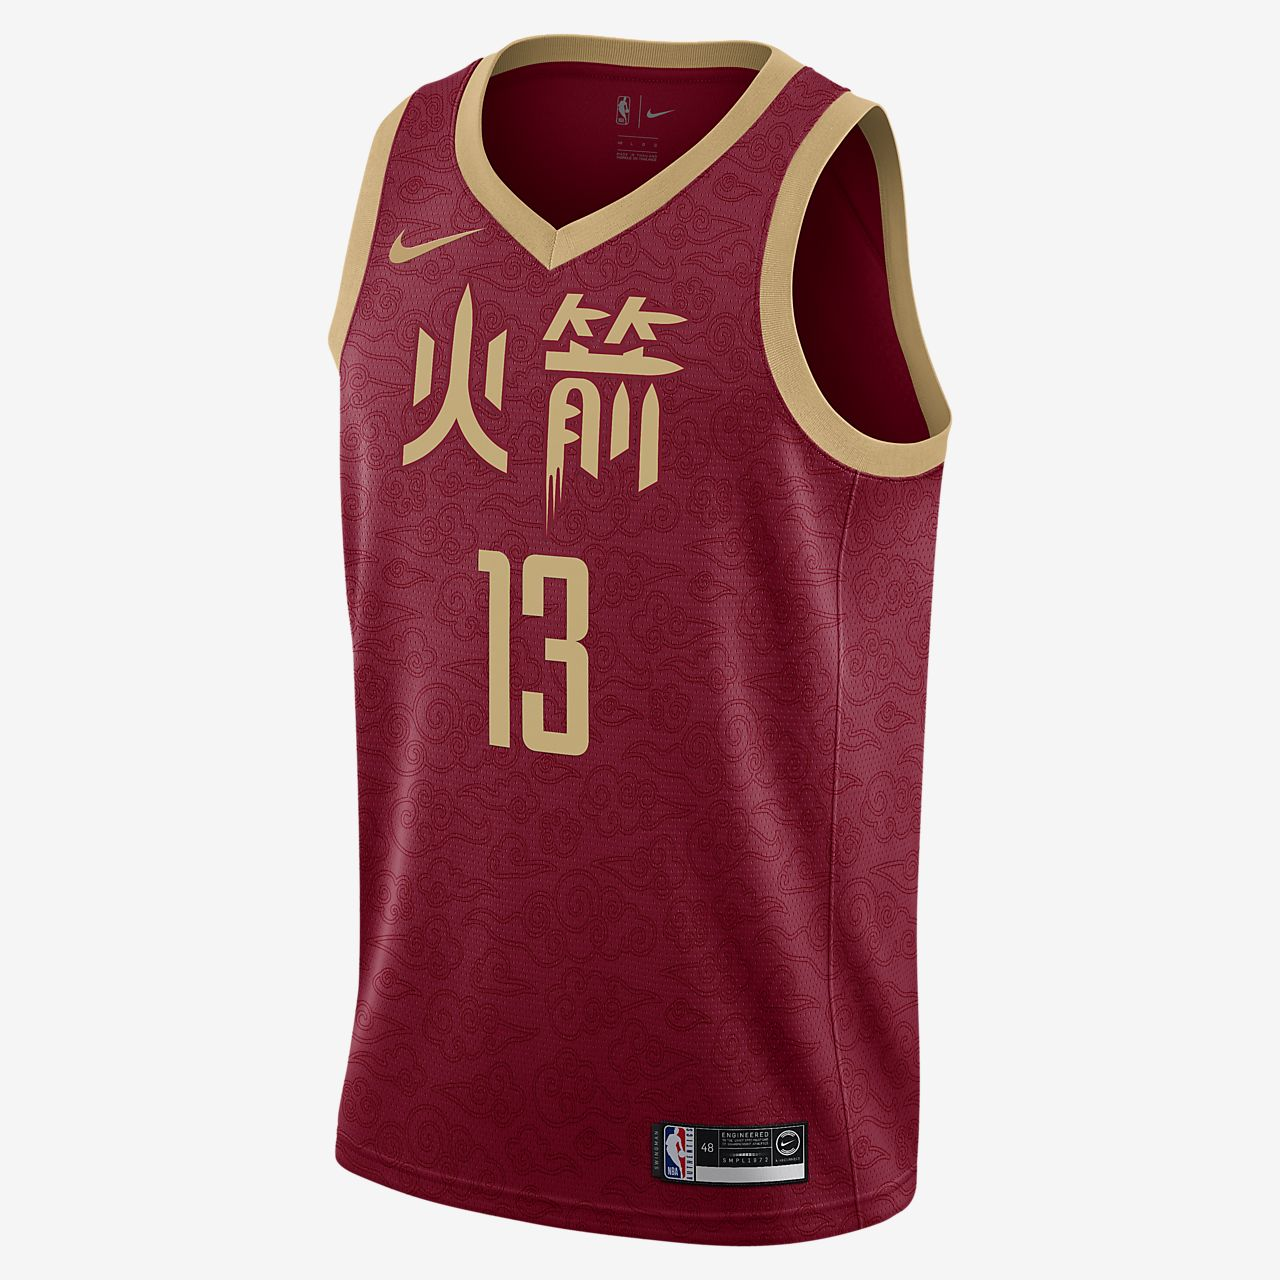 2ed942fefa1 James Harden City Edition Swingman (Houston Rockets) Men s Nike NBA  Connected Jersey